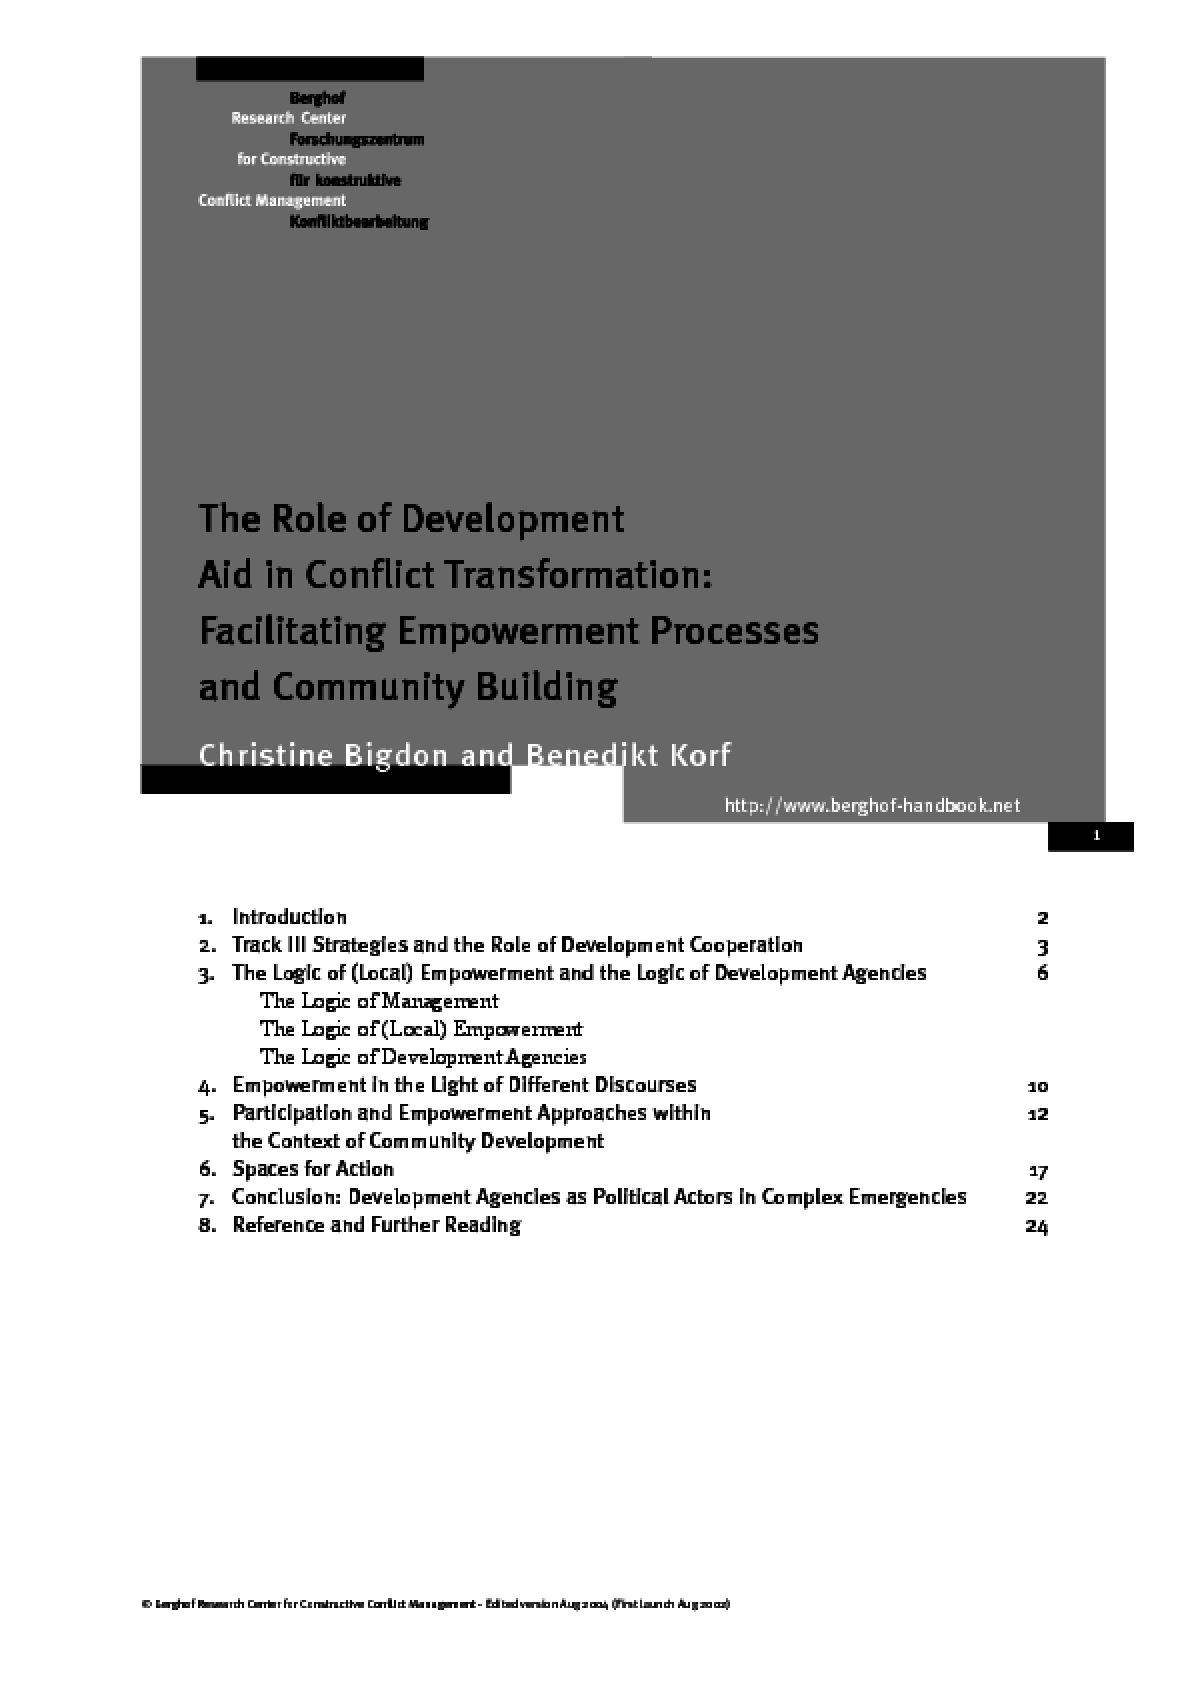 The Role of Development Aid in Conflict Transformation: Facilitating Empowerment Processes and Community Building